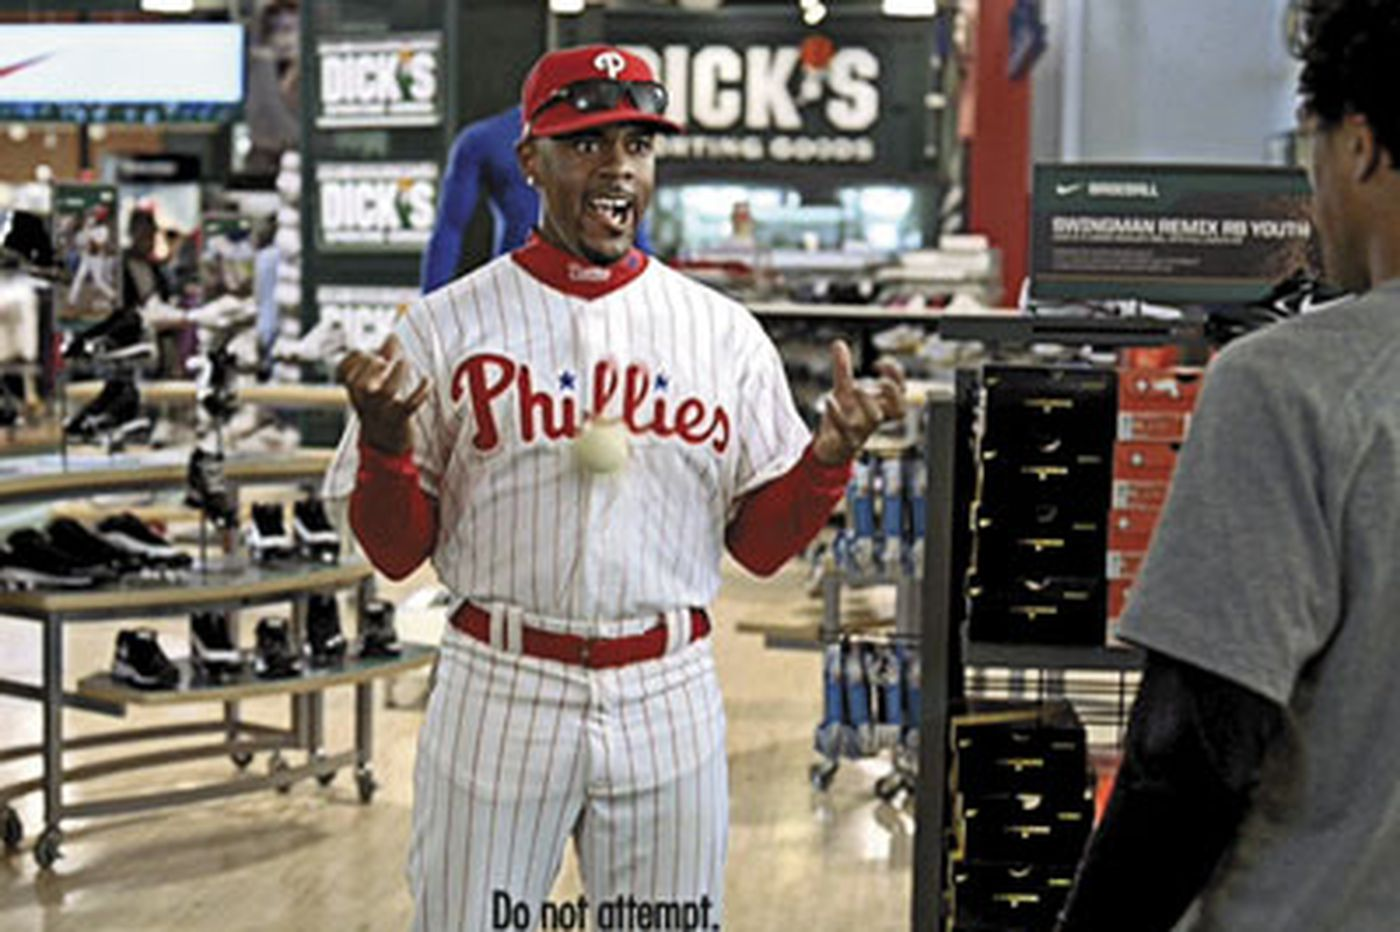 Jimmy Rollins has gut what it takes to sell shoes